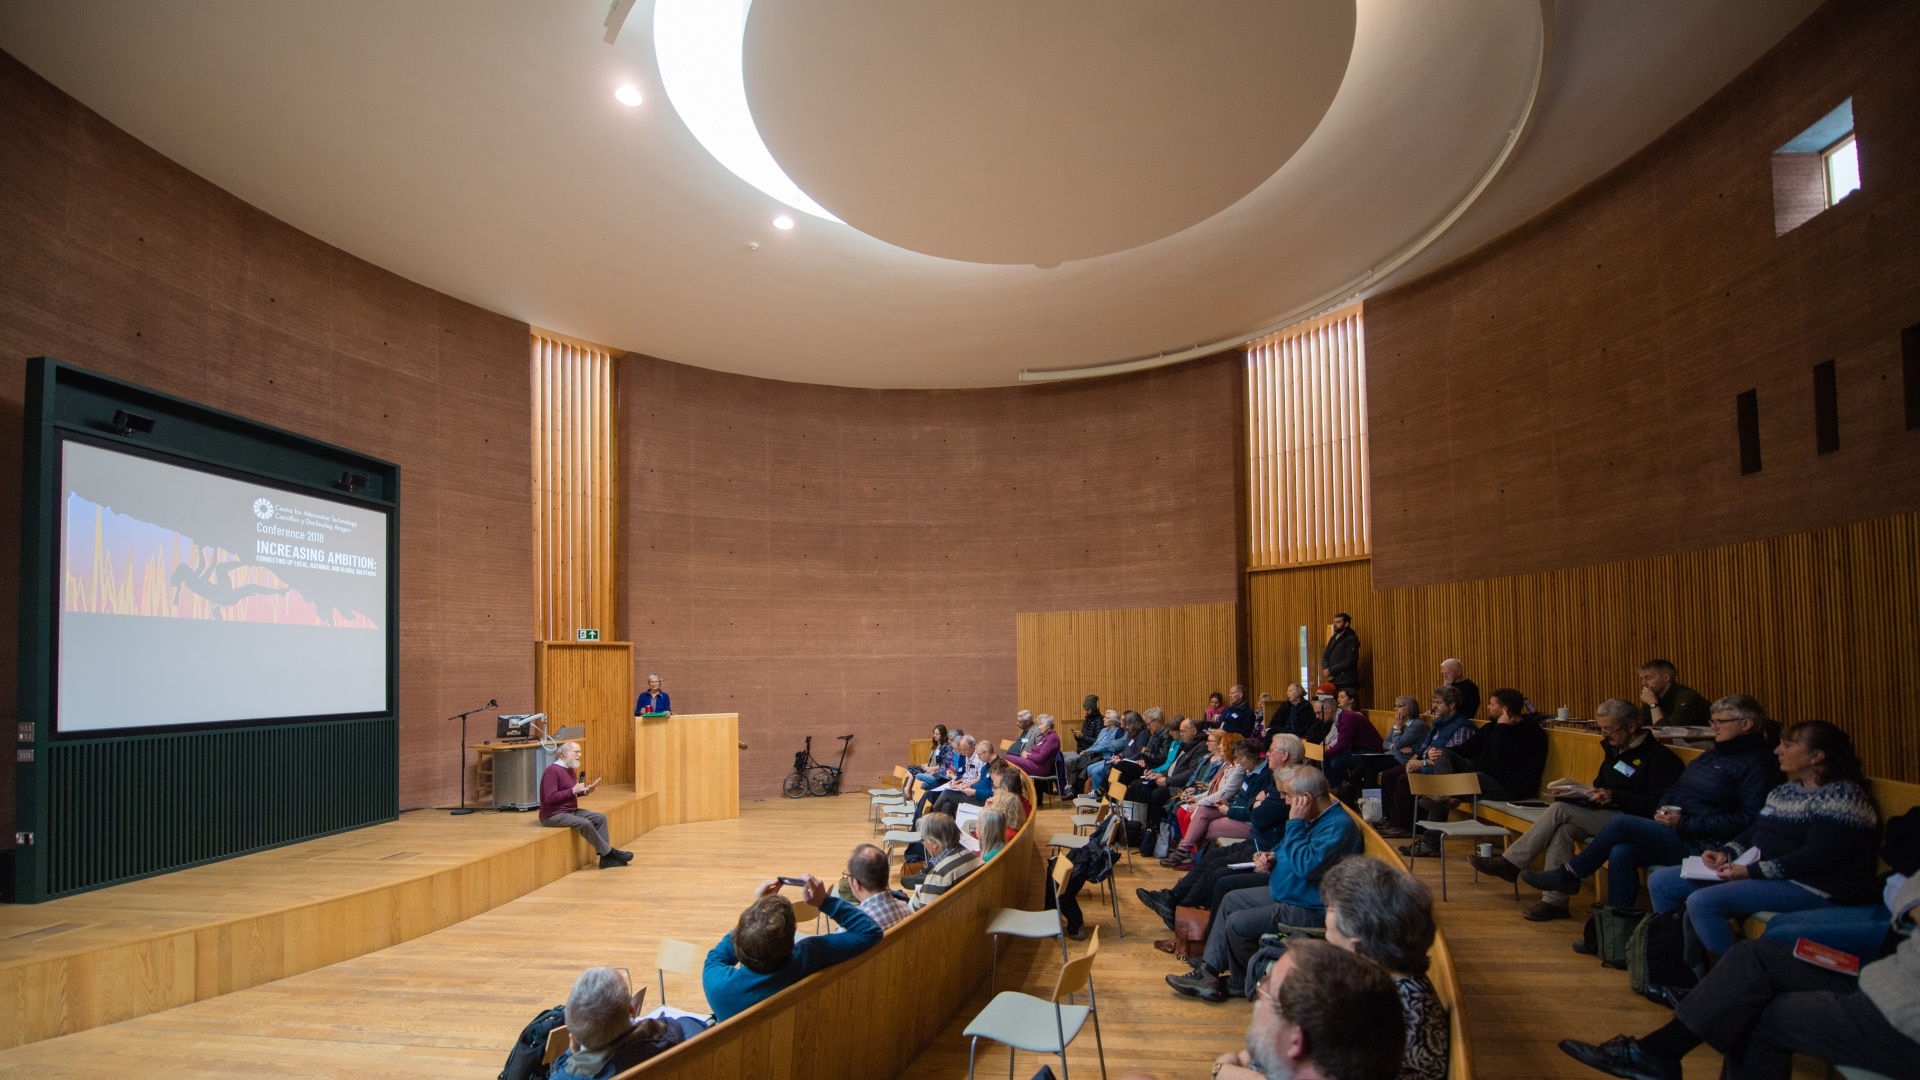 Rammed Earth lecture theatre at Graduate School of the Environment